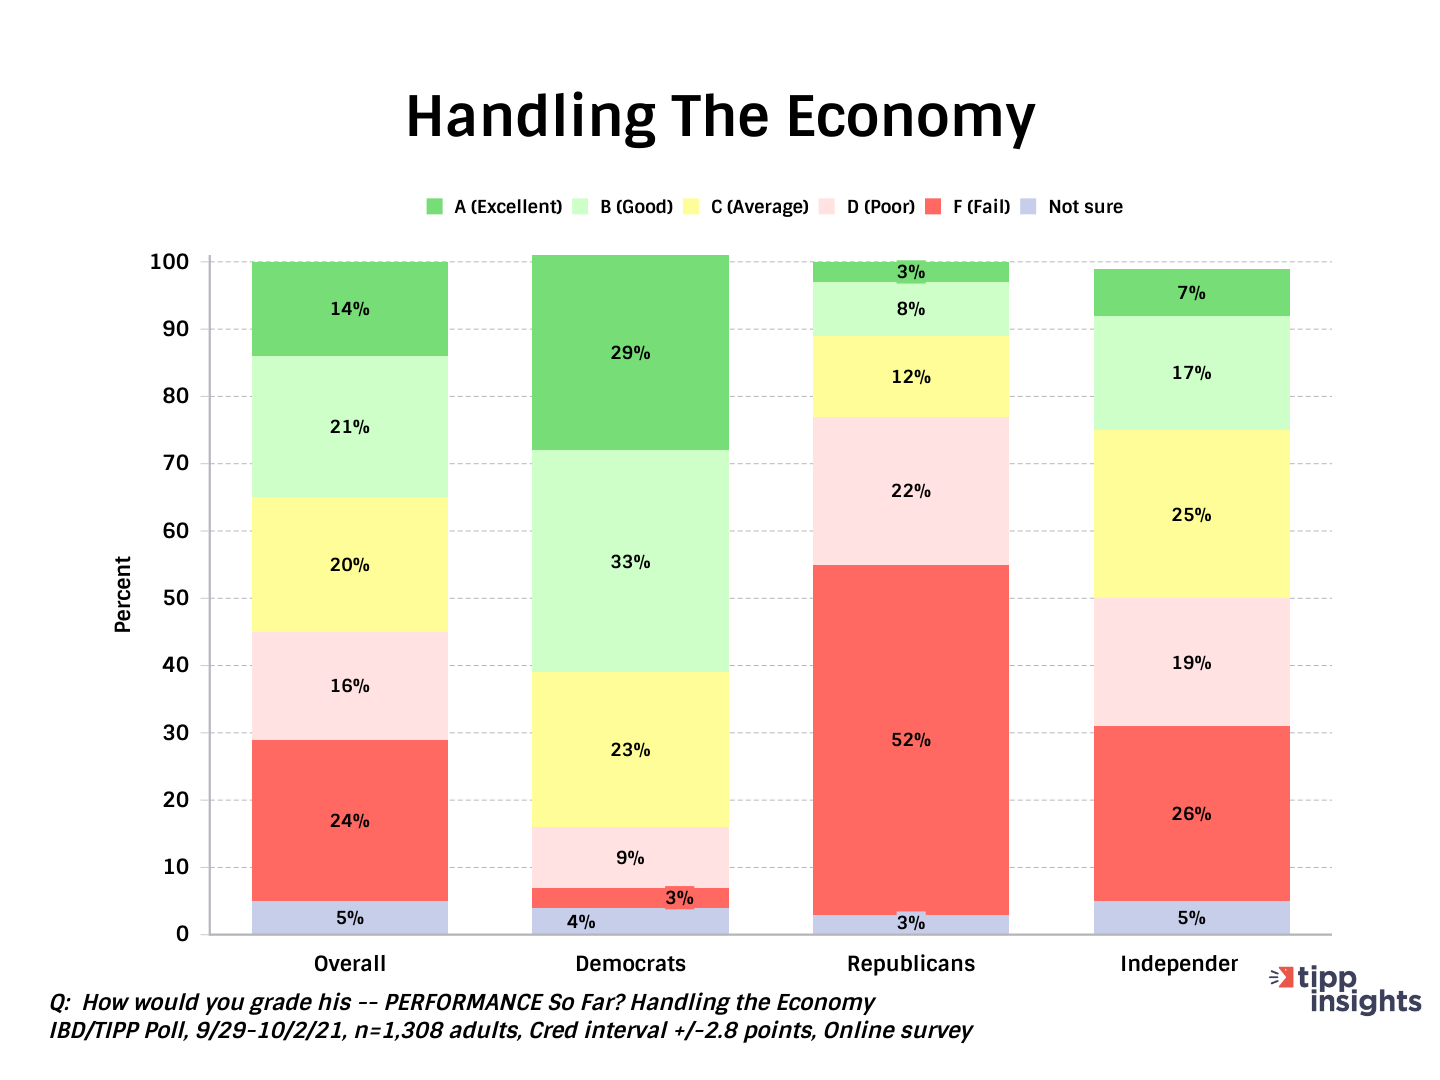 IBD/TIPP Poll Results: Joe Biden and his Handling of The United States Economy 2